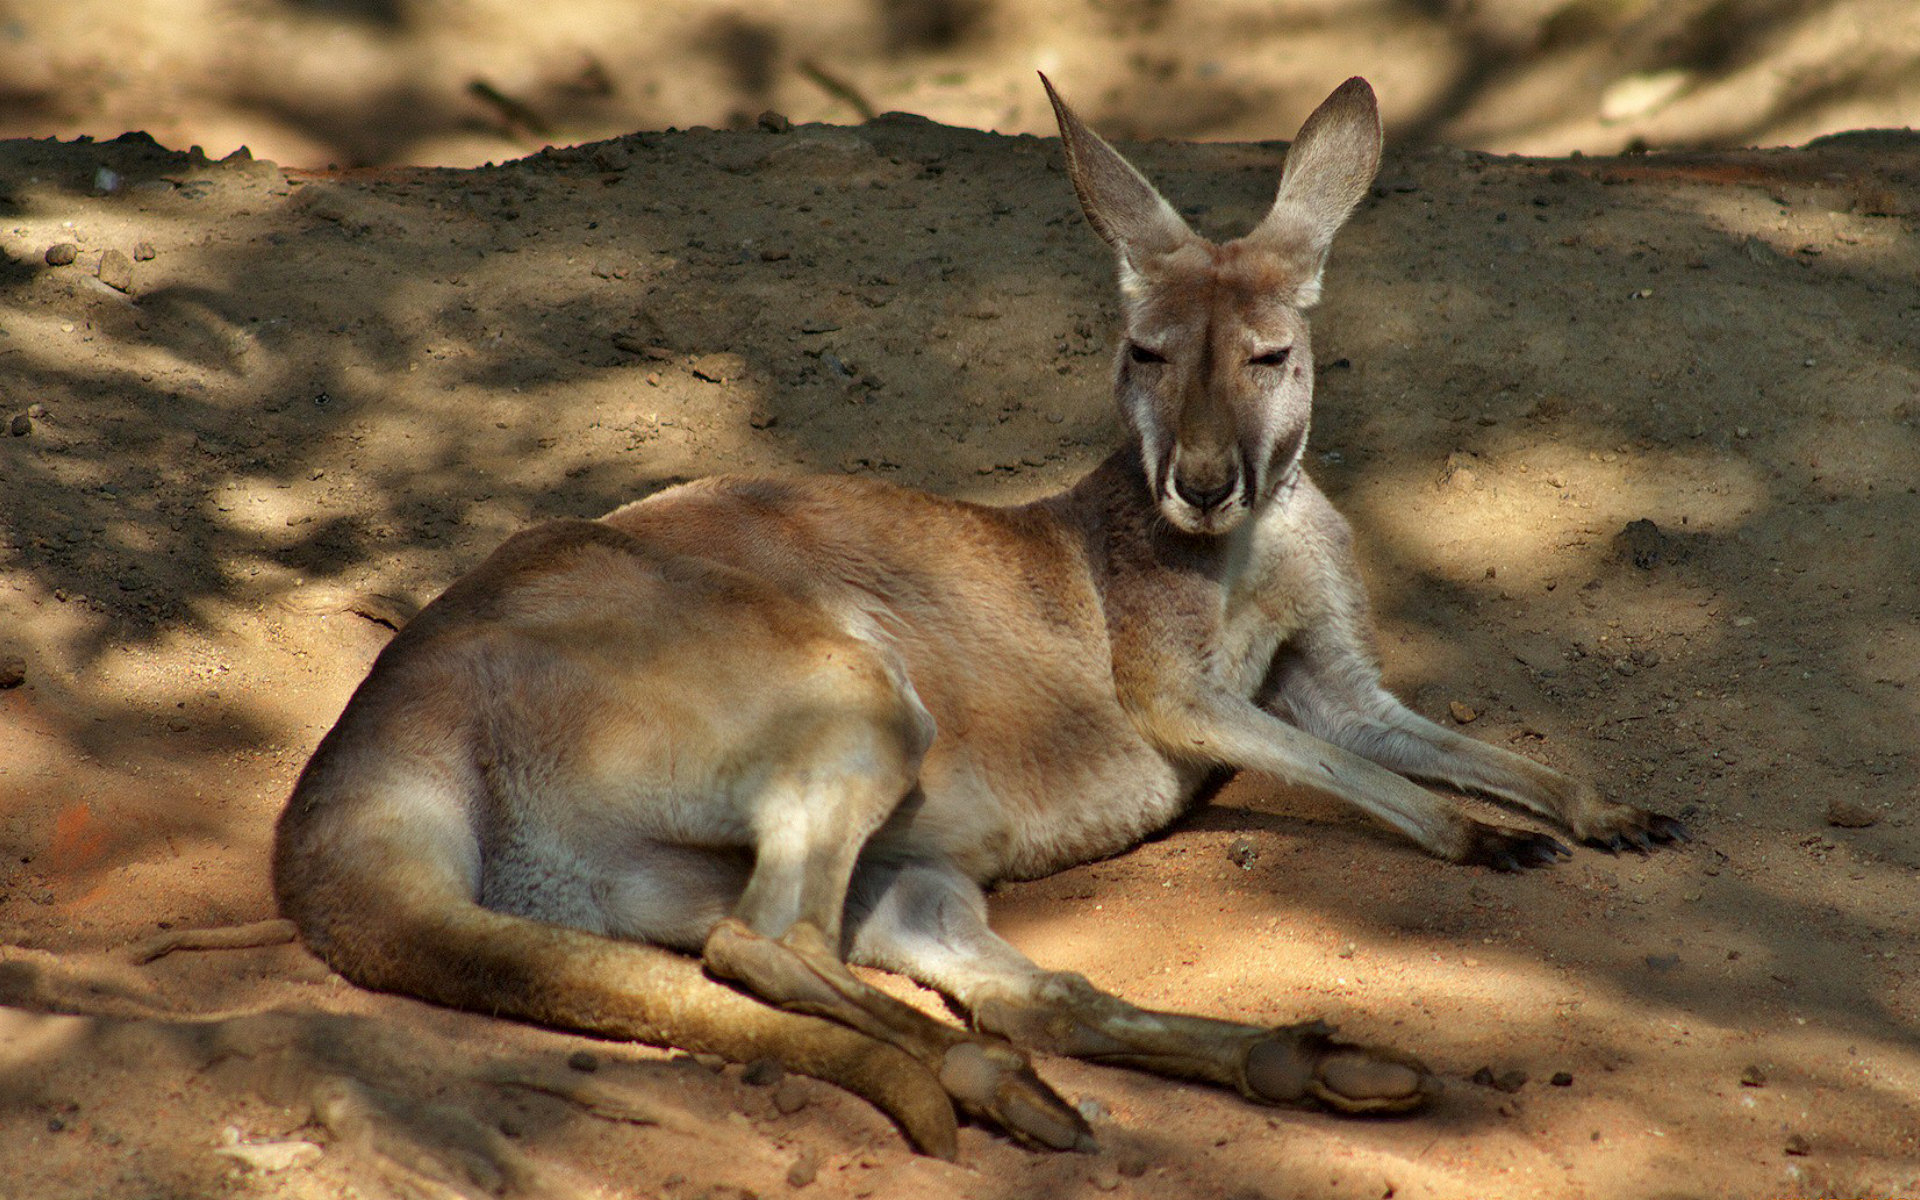 Kangaroo Wallpaper Hd Kangaroo Full Hd Wallpaper And Background Image